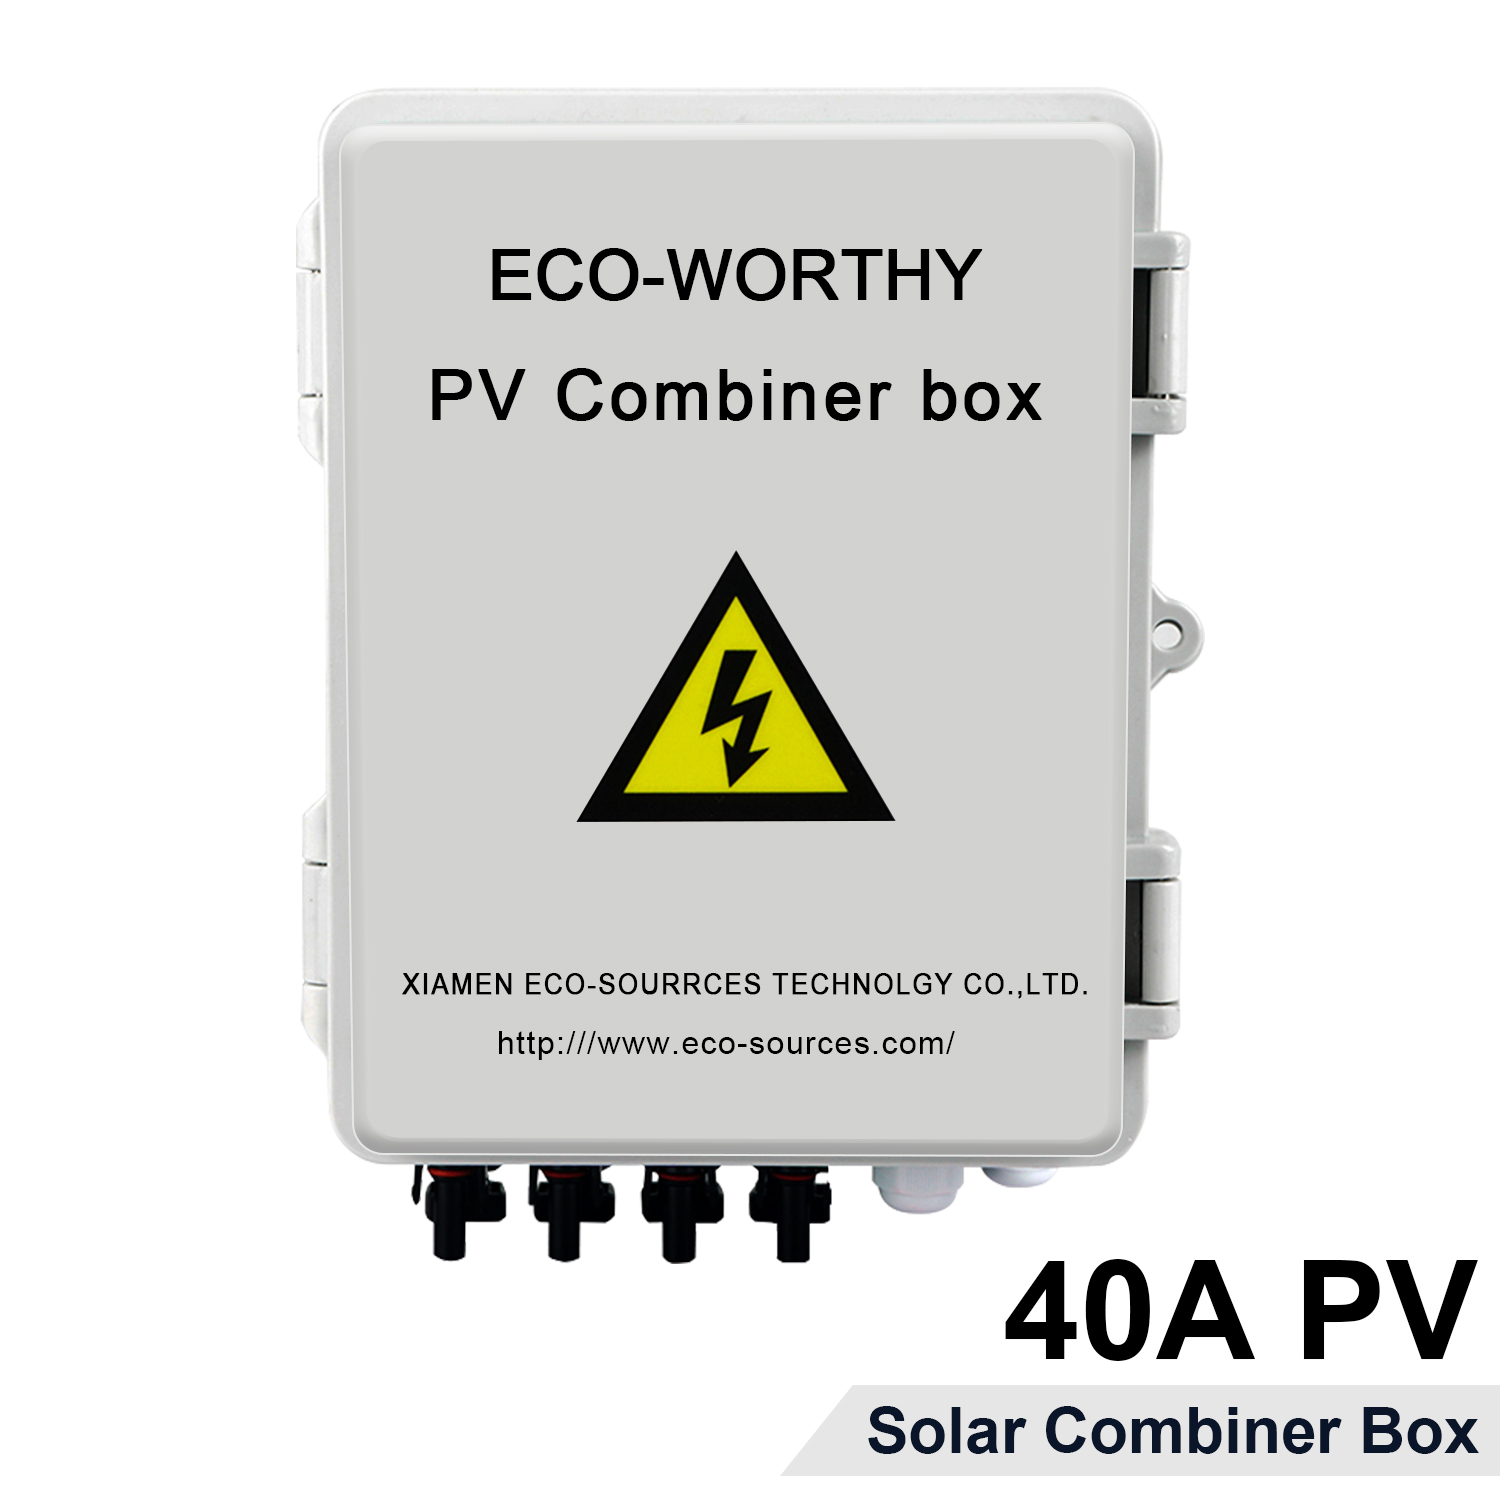 ECO-WORTHY PV Combiner Box For Solar Panels, With Lightning Arreste, Current And Circuit Brekers (4 String)